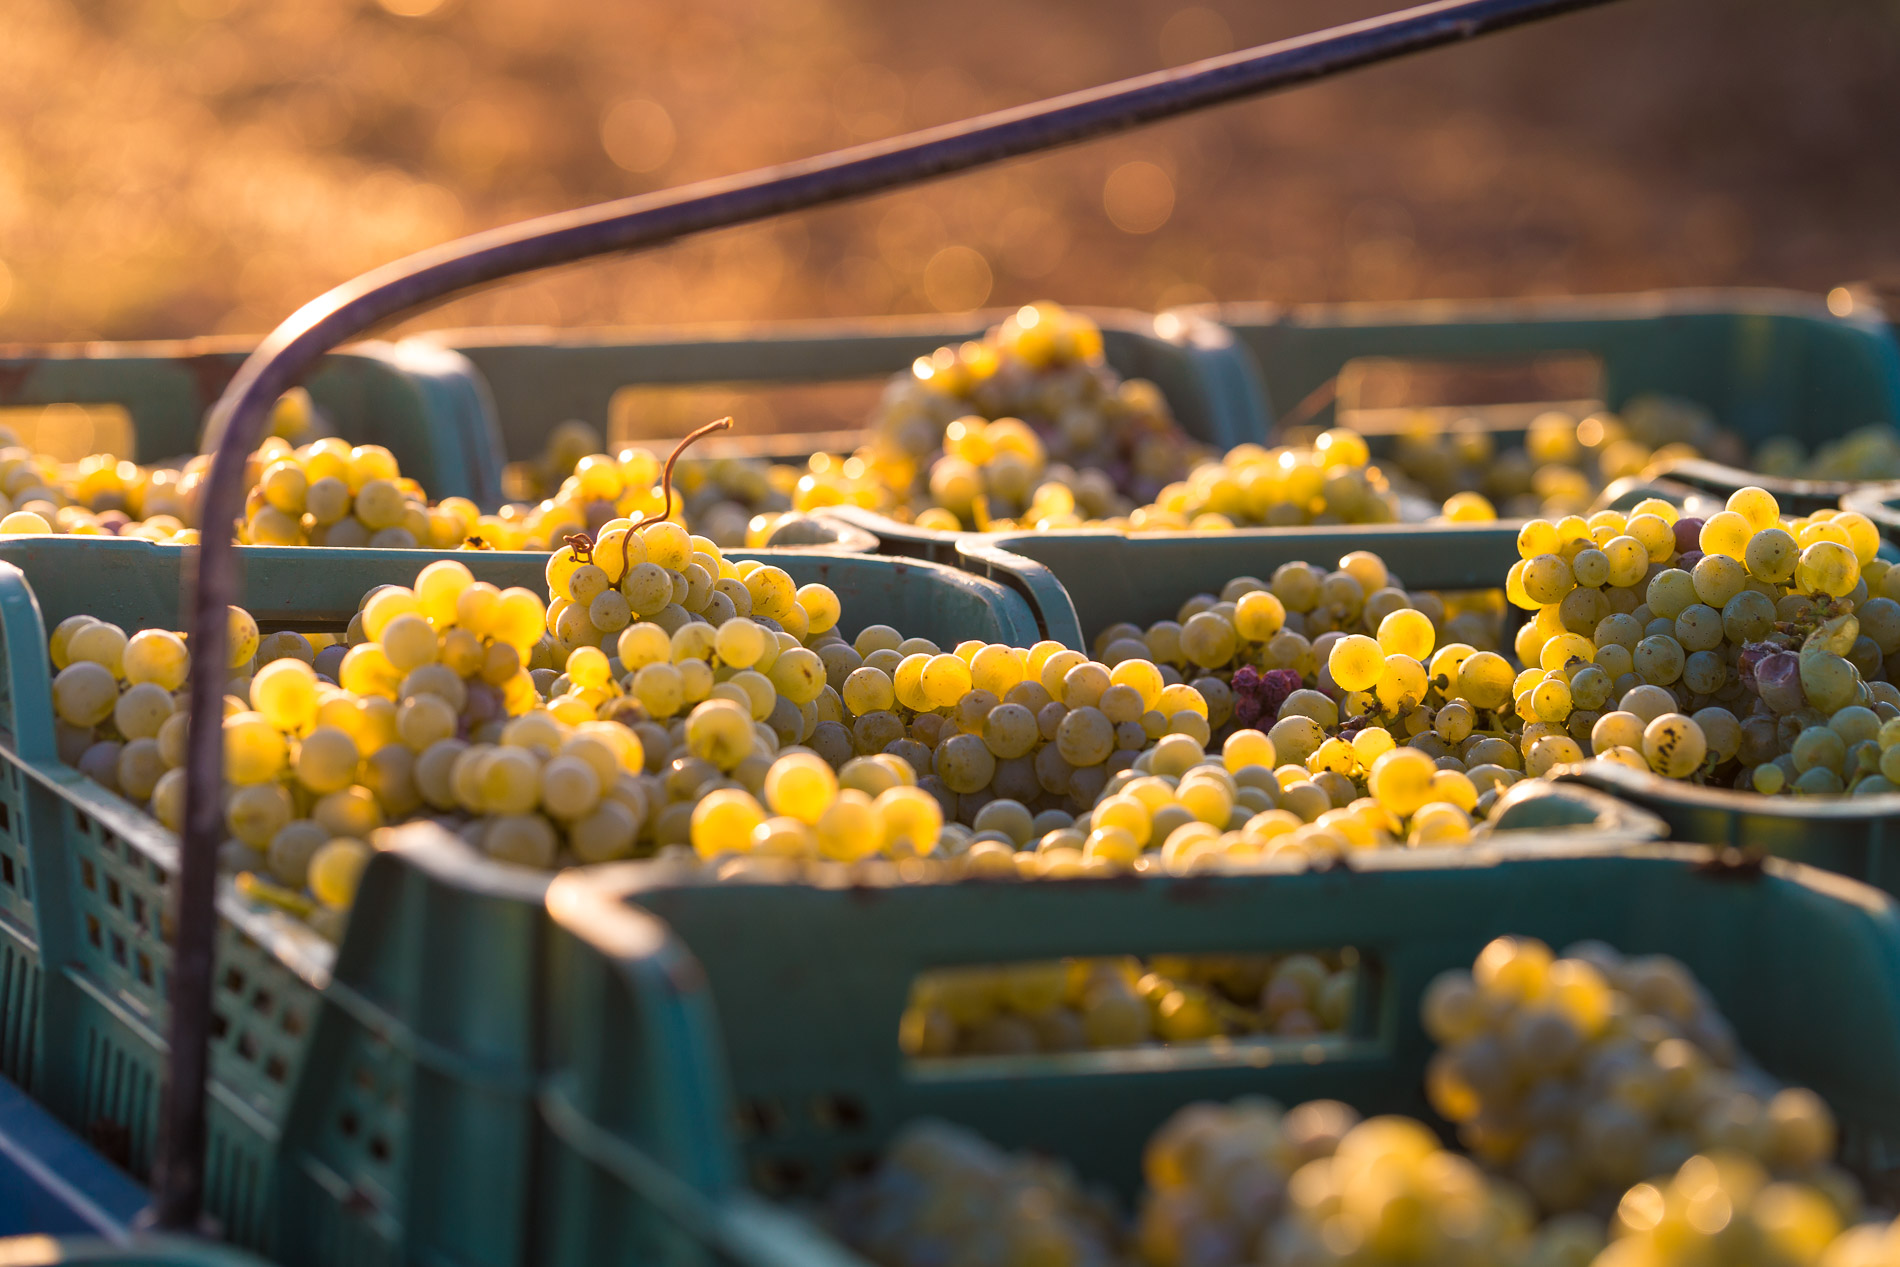 12.7 THOUSAND TONS OF GRAPES WERE HARVESTED IN KOBLEVO